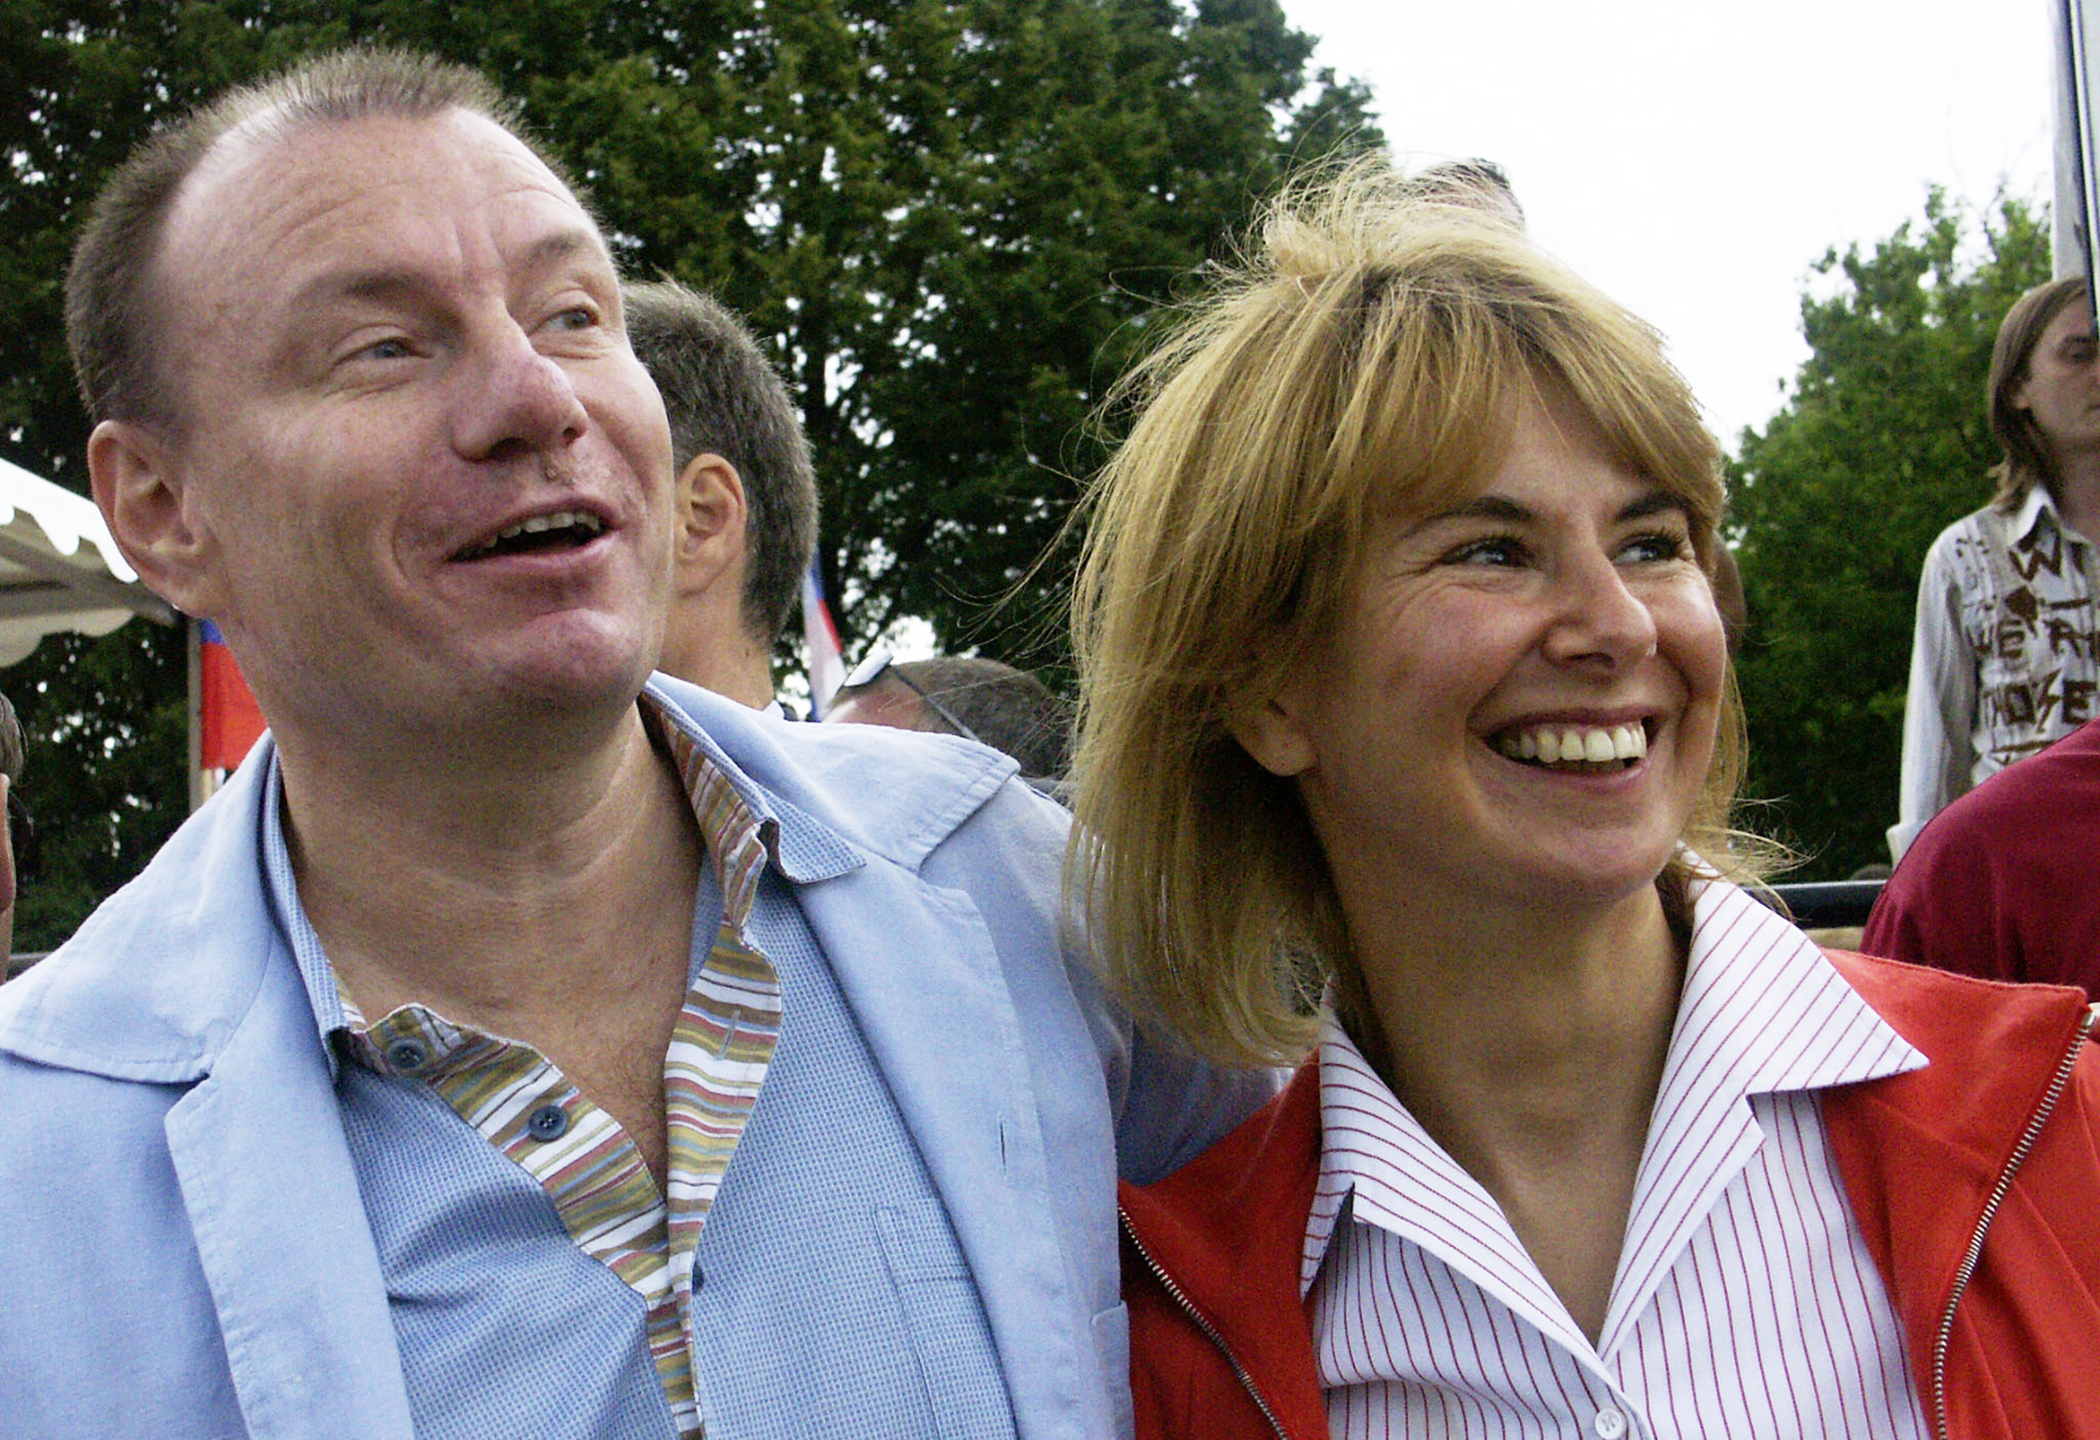 Vladimir Potanin with wife Natalia Potanina at